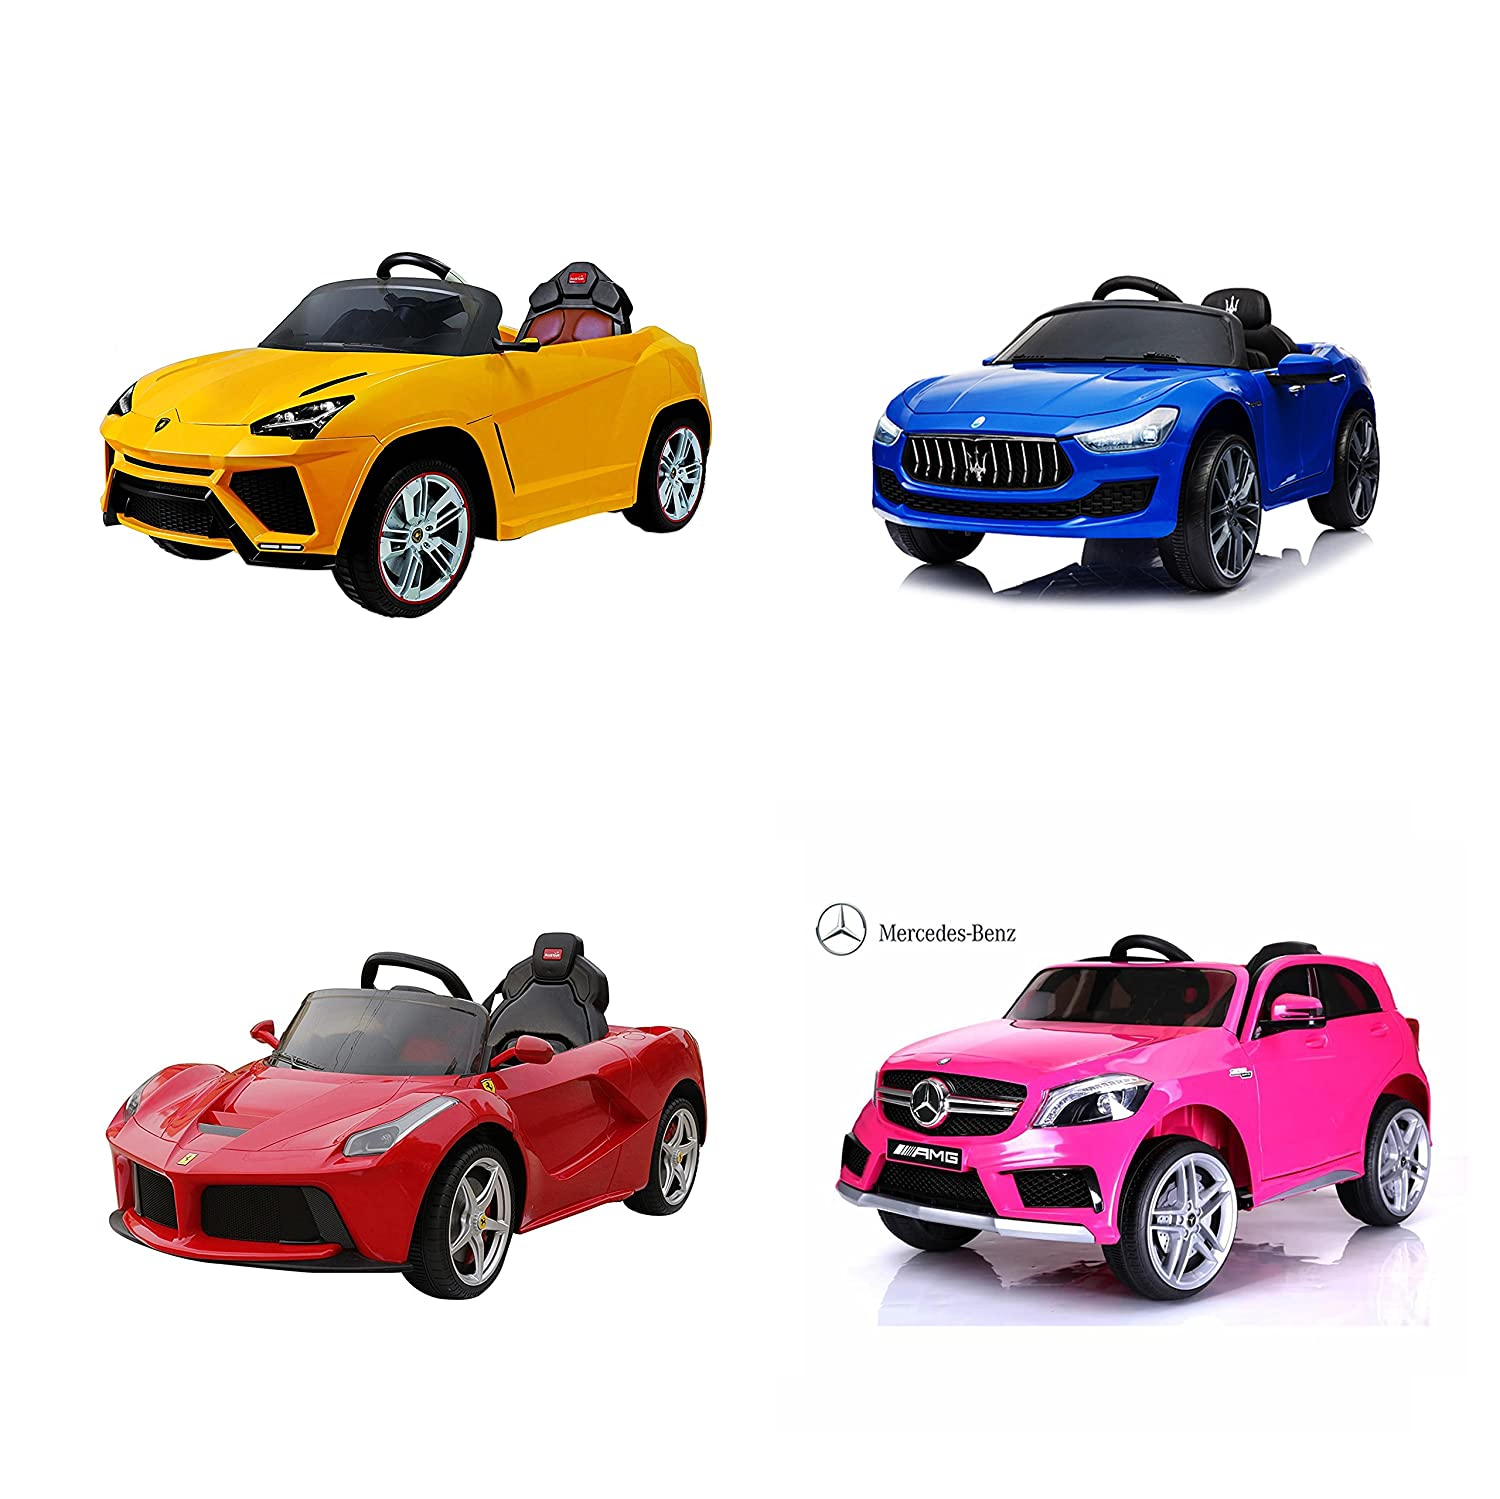 12V Charger for Children Powered Ride On Car 12 Volt Battery Charger for BCP Wrangler SUV Costzon Kid Trax Huffy Kids Ride On Toys FLH APP